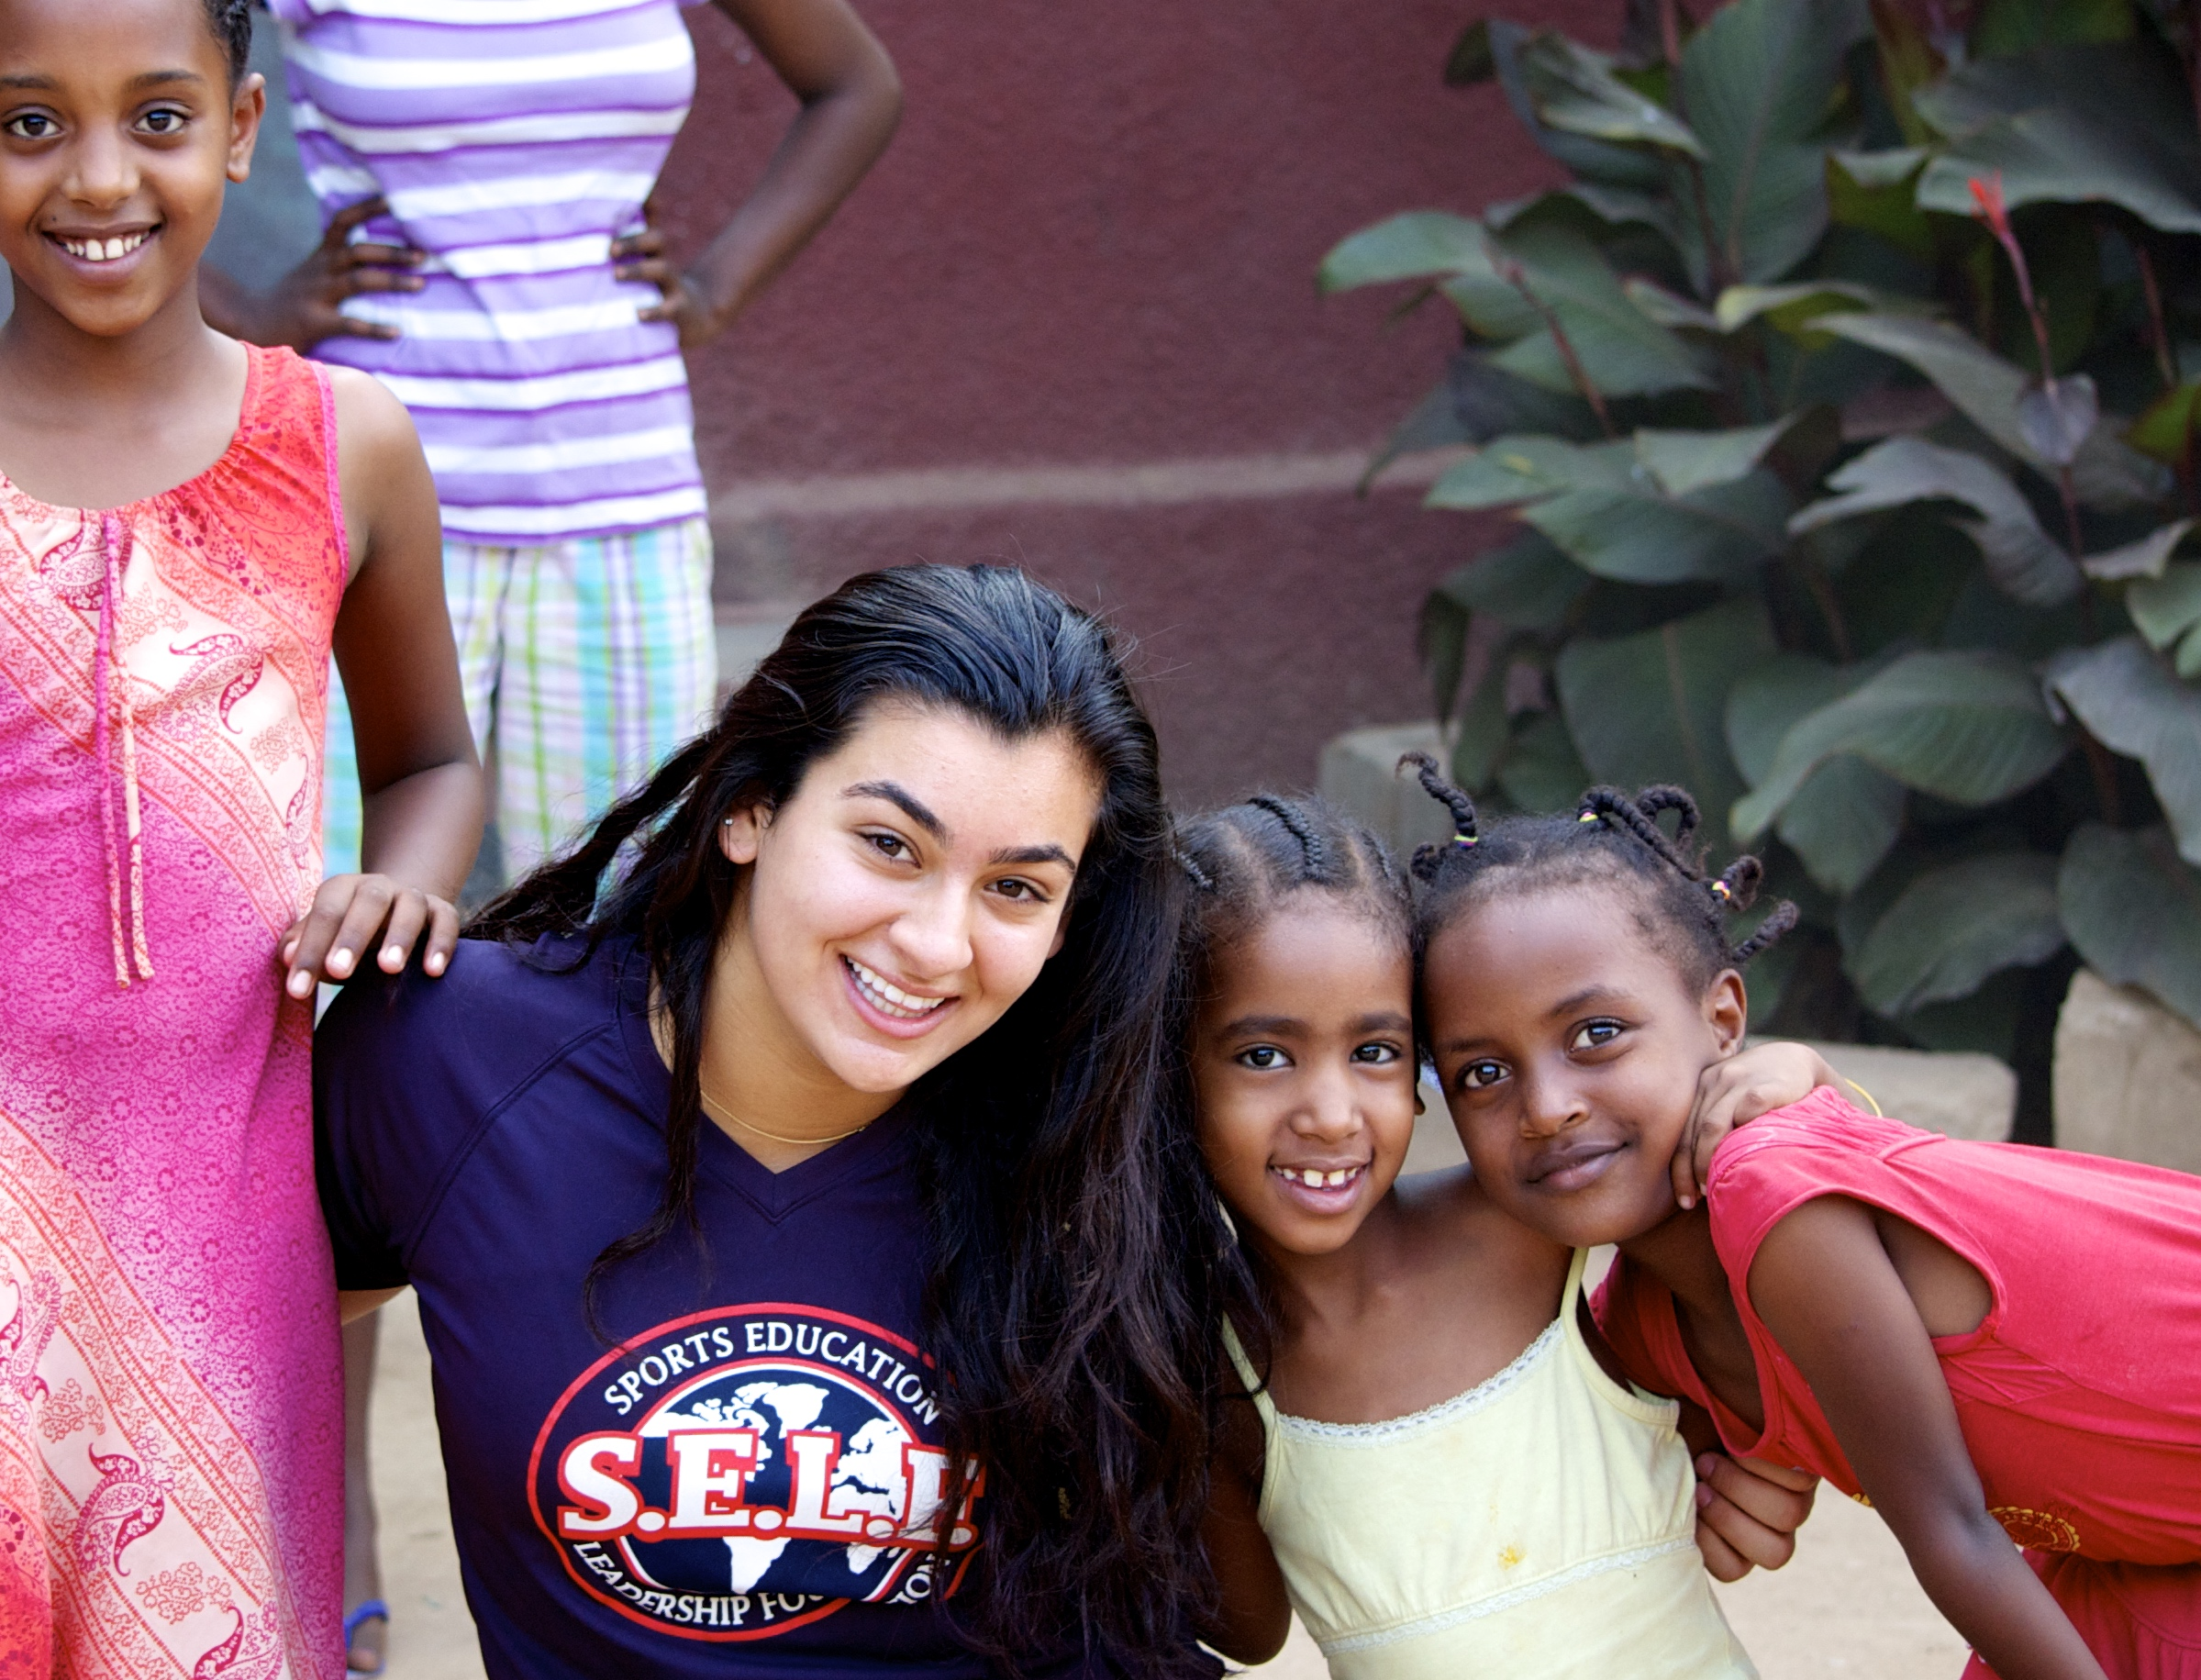 Hanna G. and girls at the orphanage